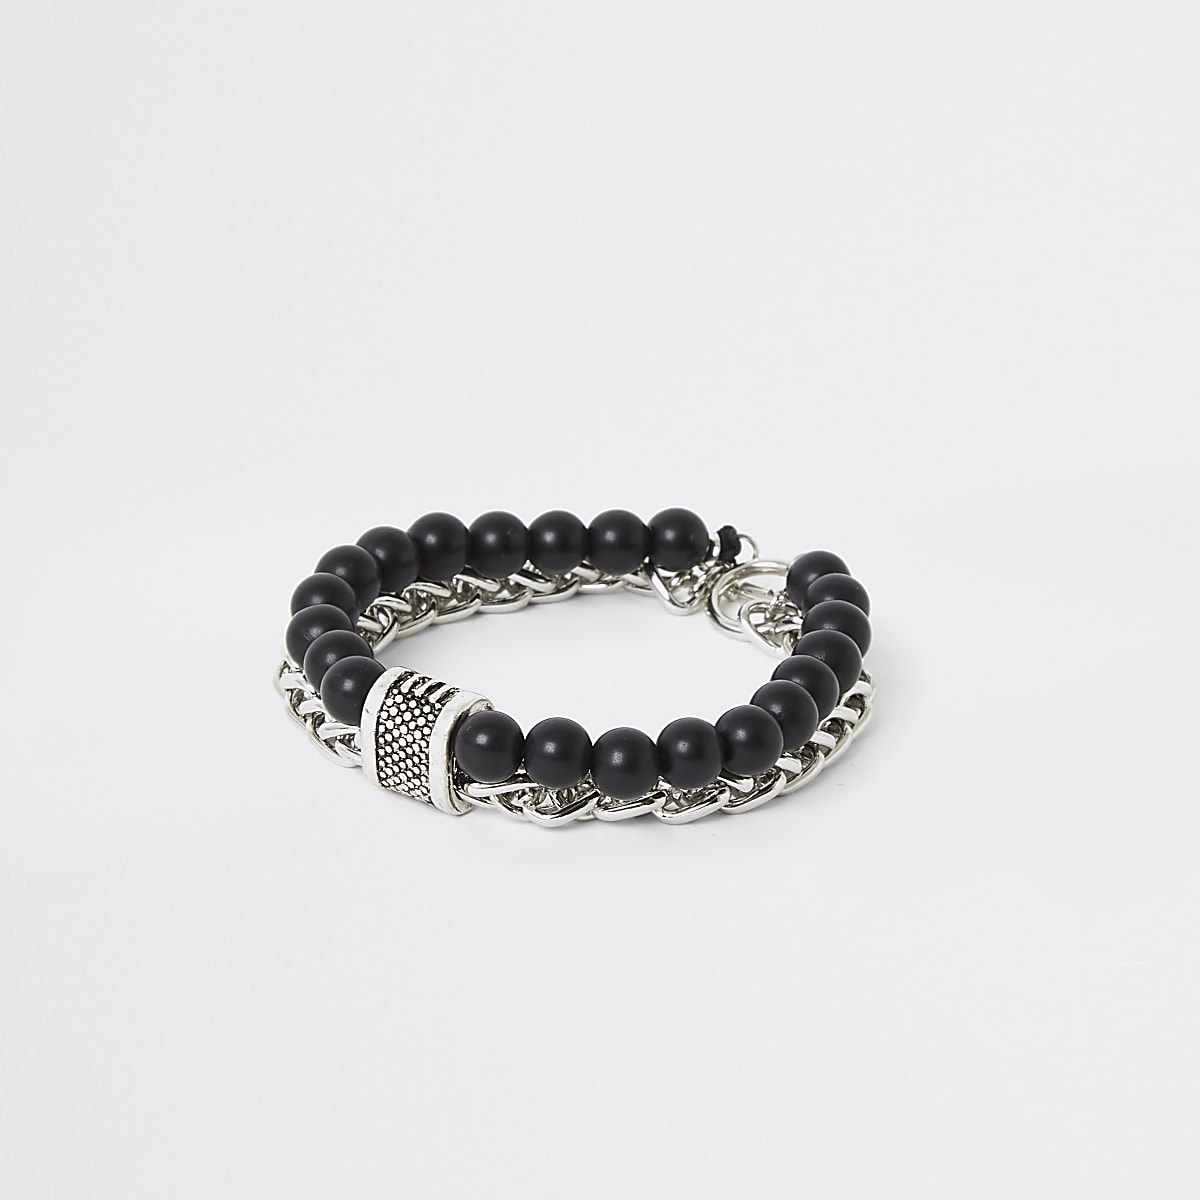 Black chain and beaded bracelet